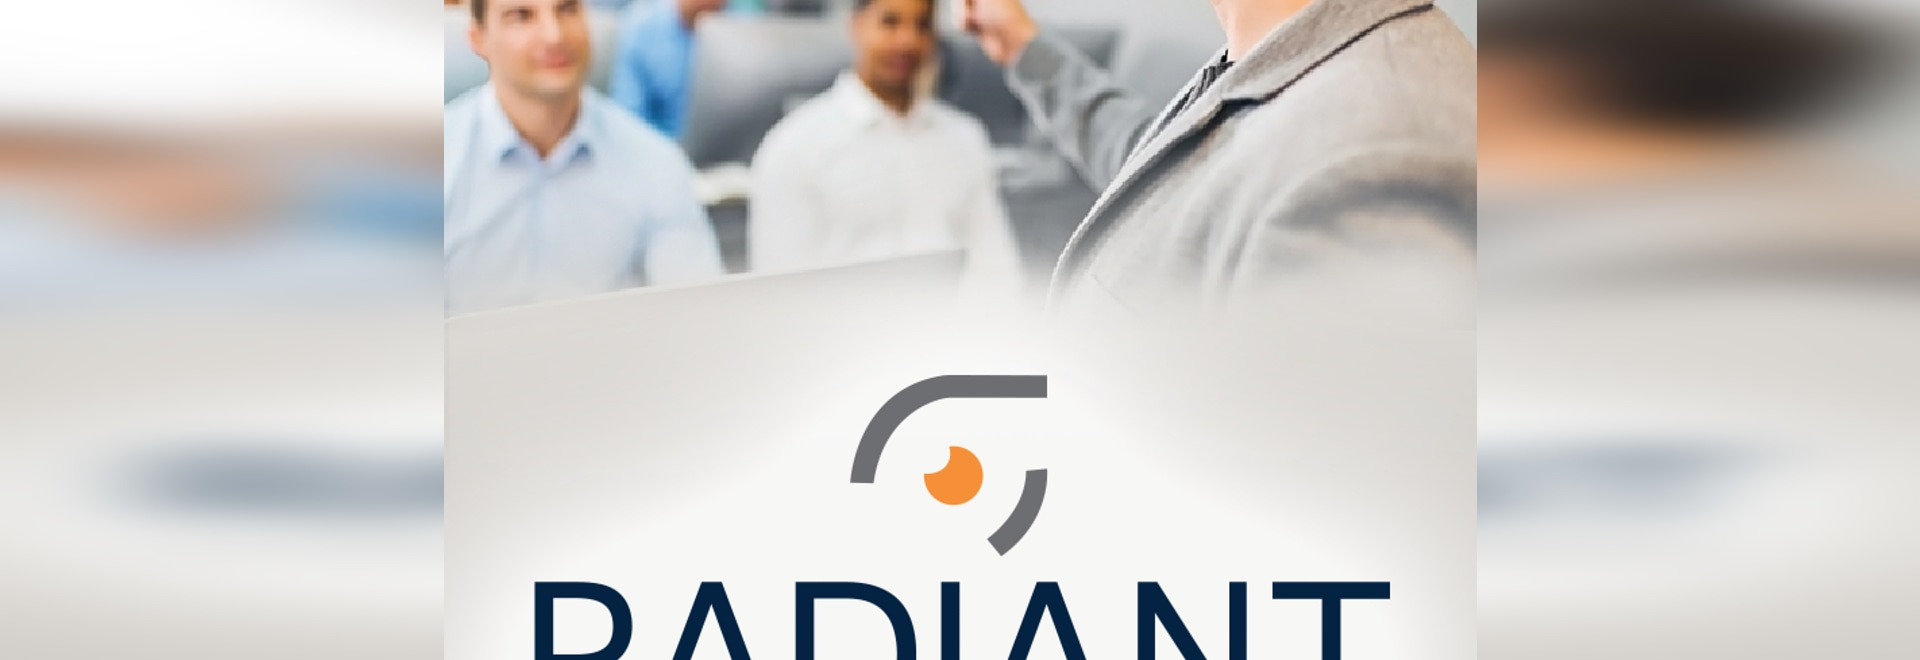 Radiant Hosts Educational Seminar on Light and Color Measurement in Washington D.C. Area